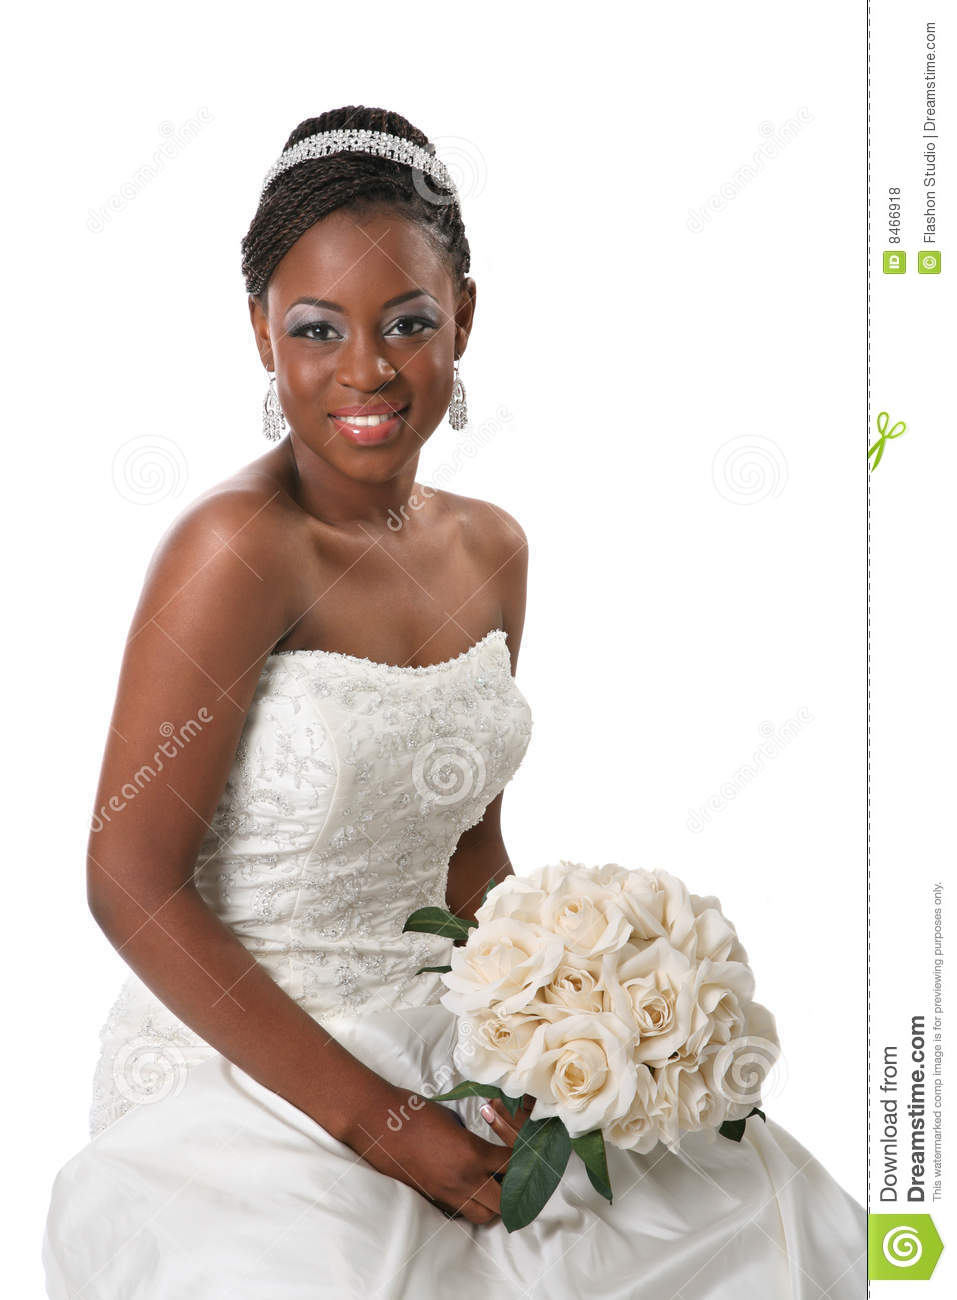 Beautiful African American Bride Portrait Stock Photo - Image of ...